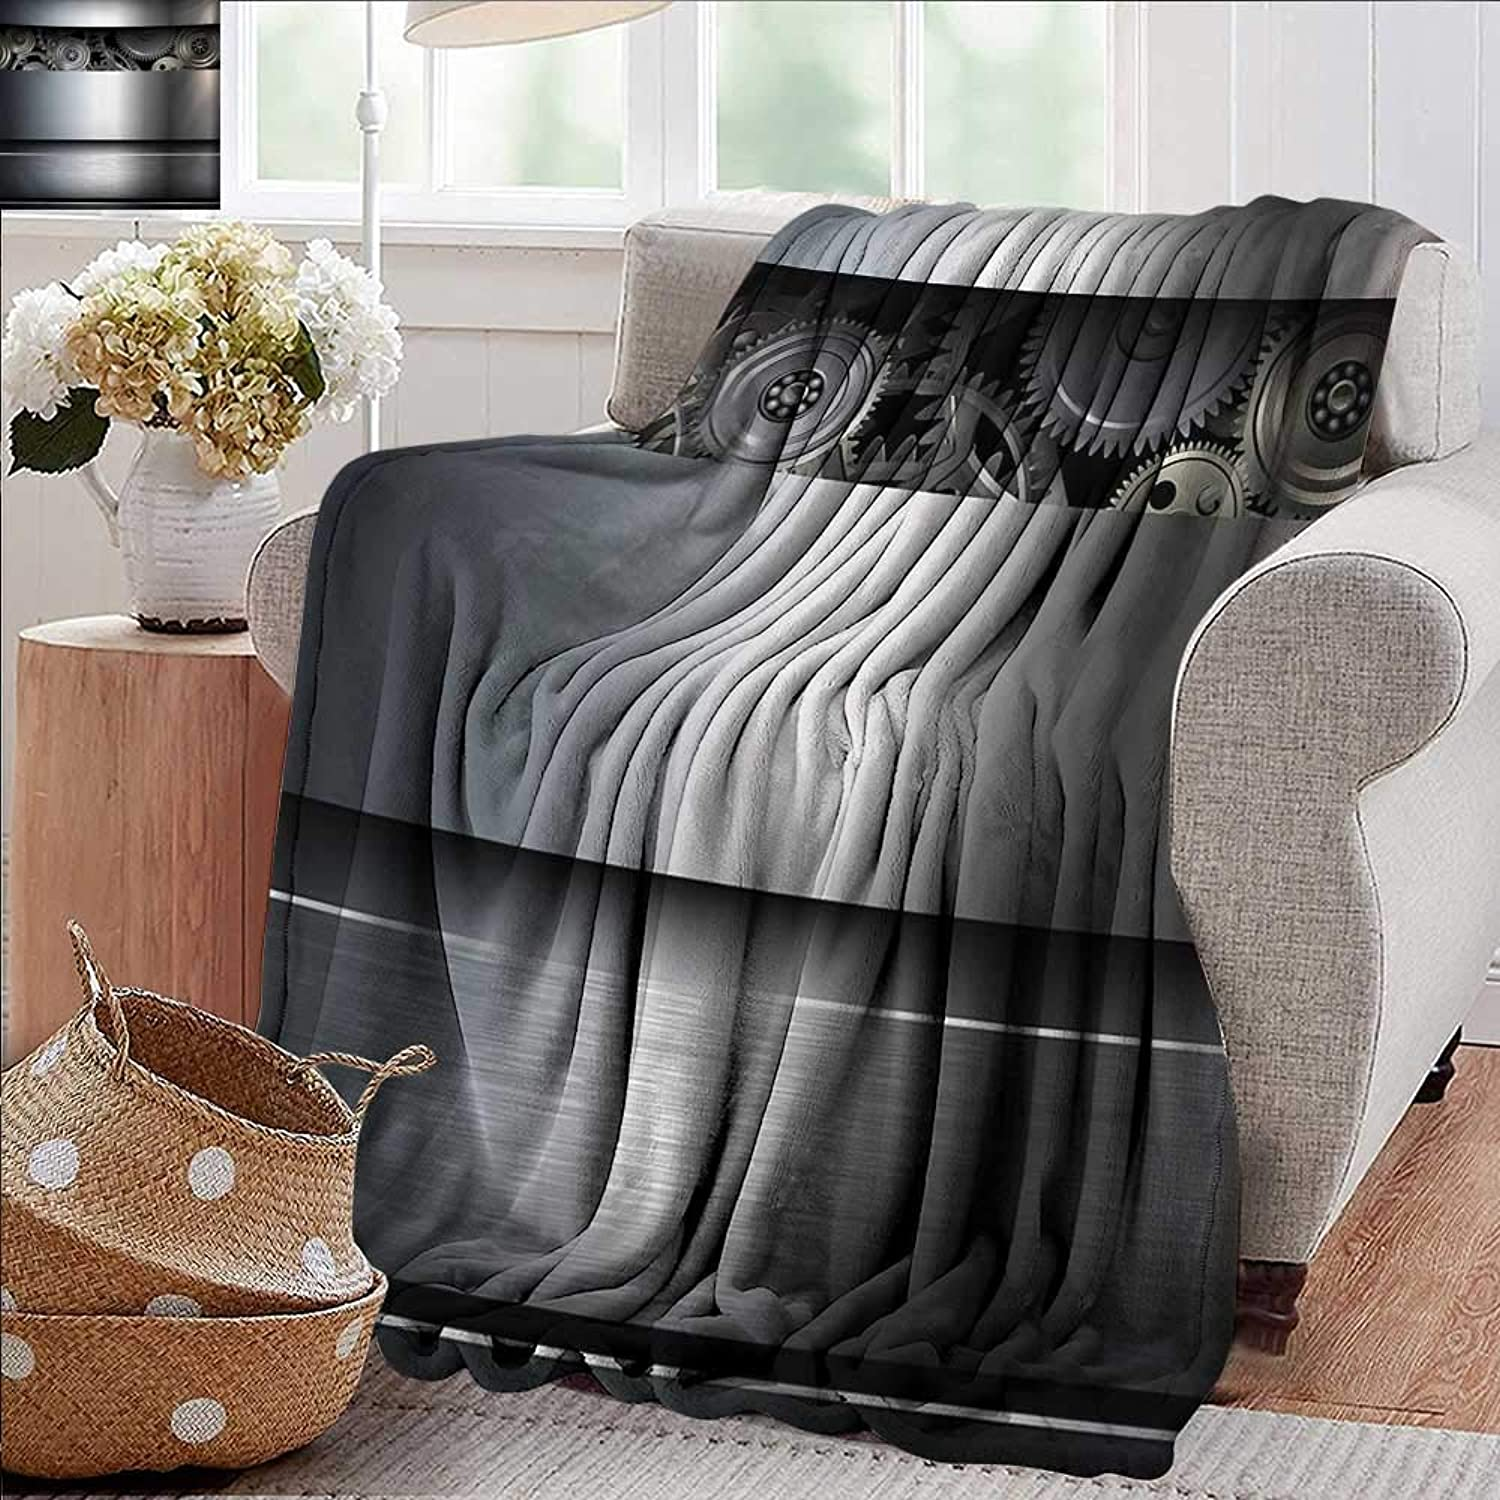 Bed Blanket,Industrial,Technological Gears Robotic Future Imagination Clockwork Science Modern Artwork,Silver,for Bed & Couch Sofa Easy Care 70 x90